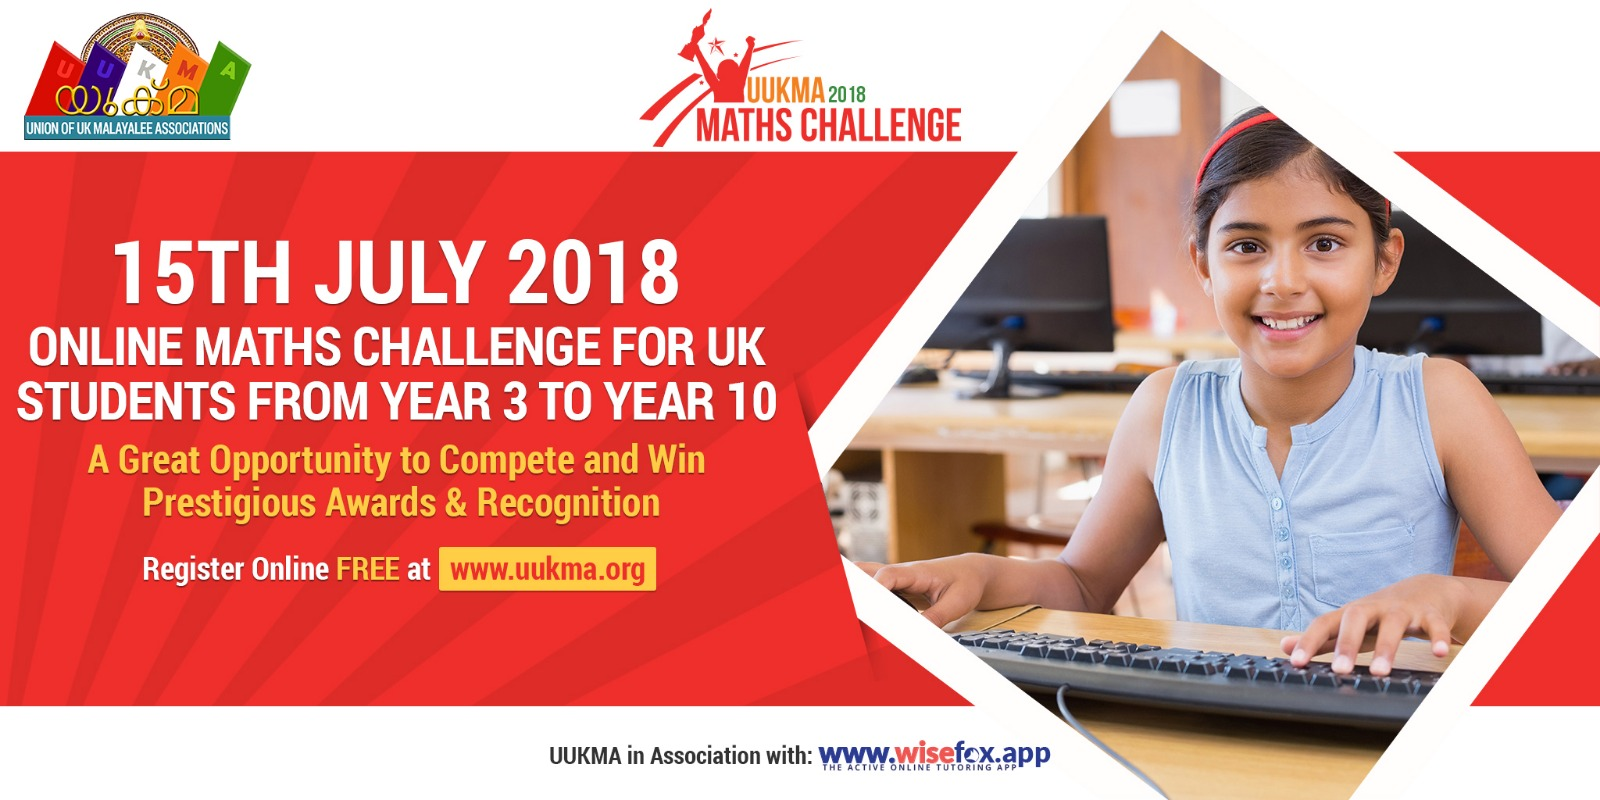 UUKMA Maths Challenge